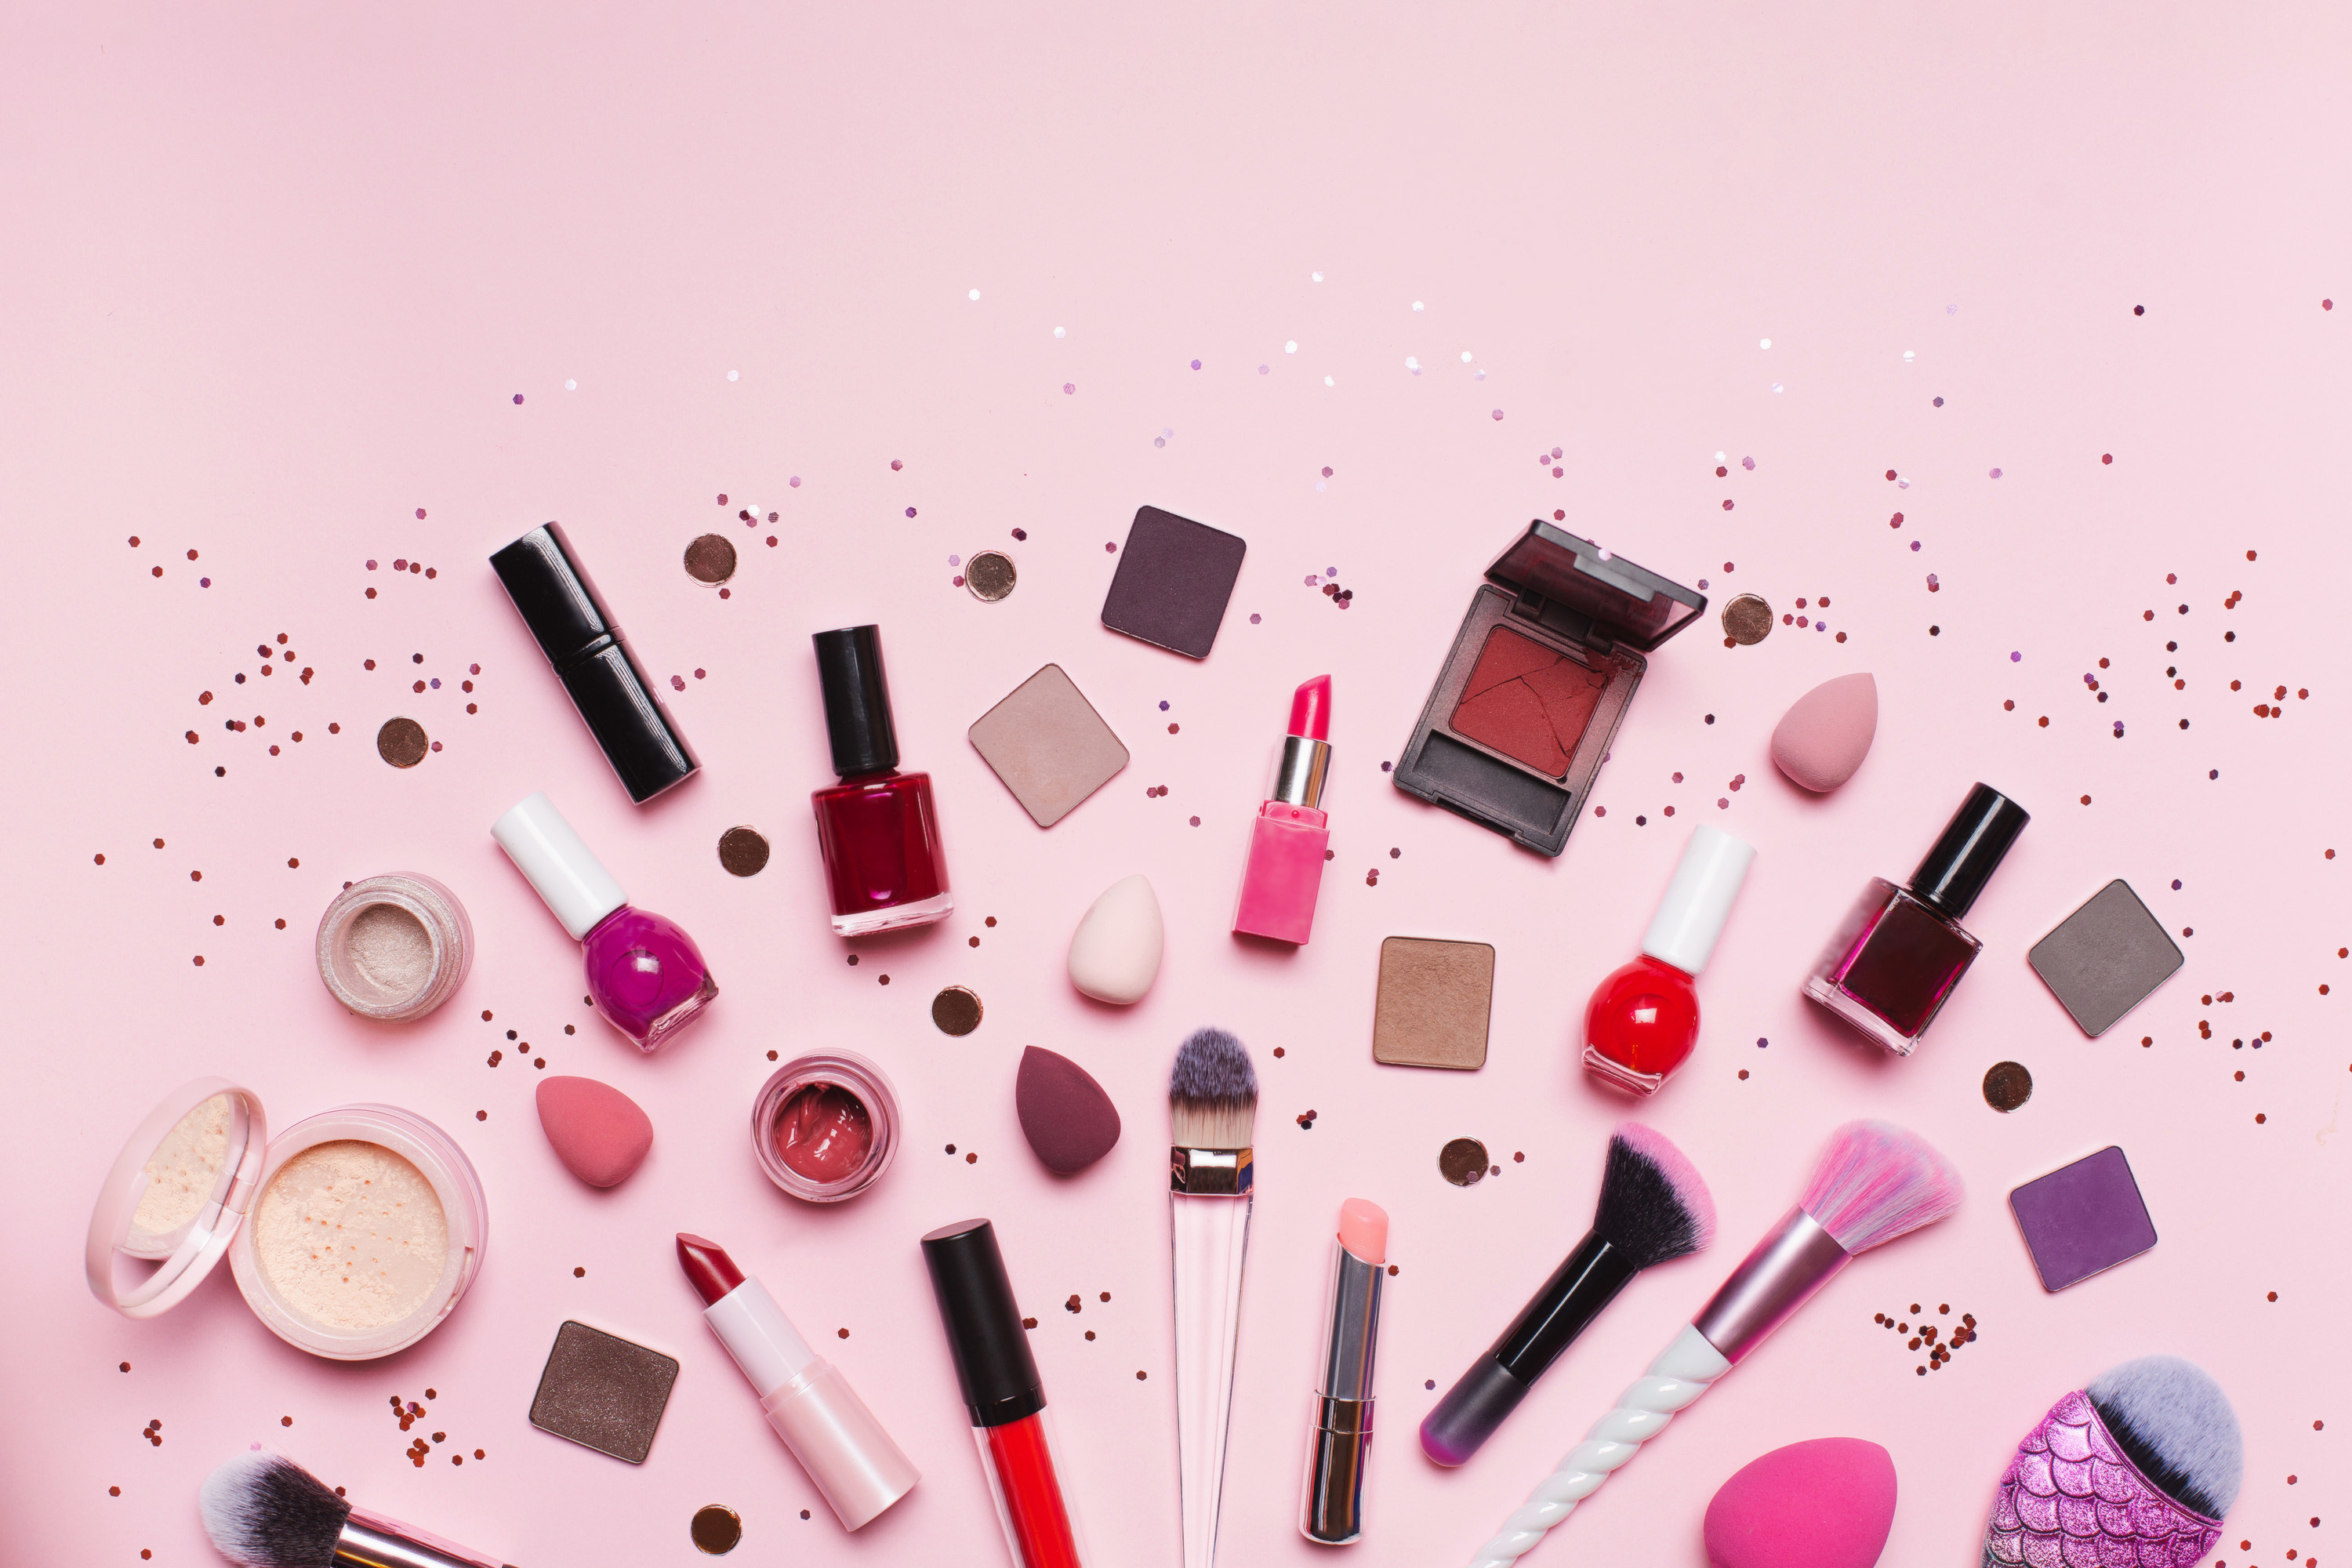 set of assorted tools and products for makeup application placed near shiny glitter on pink background